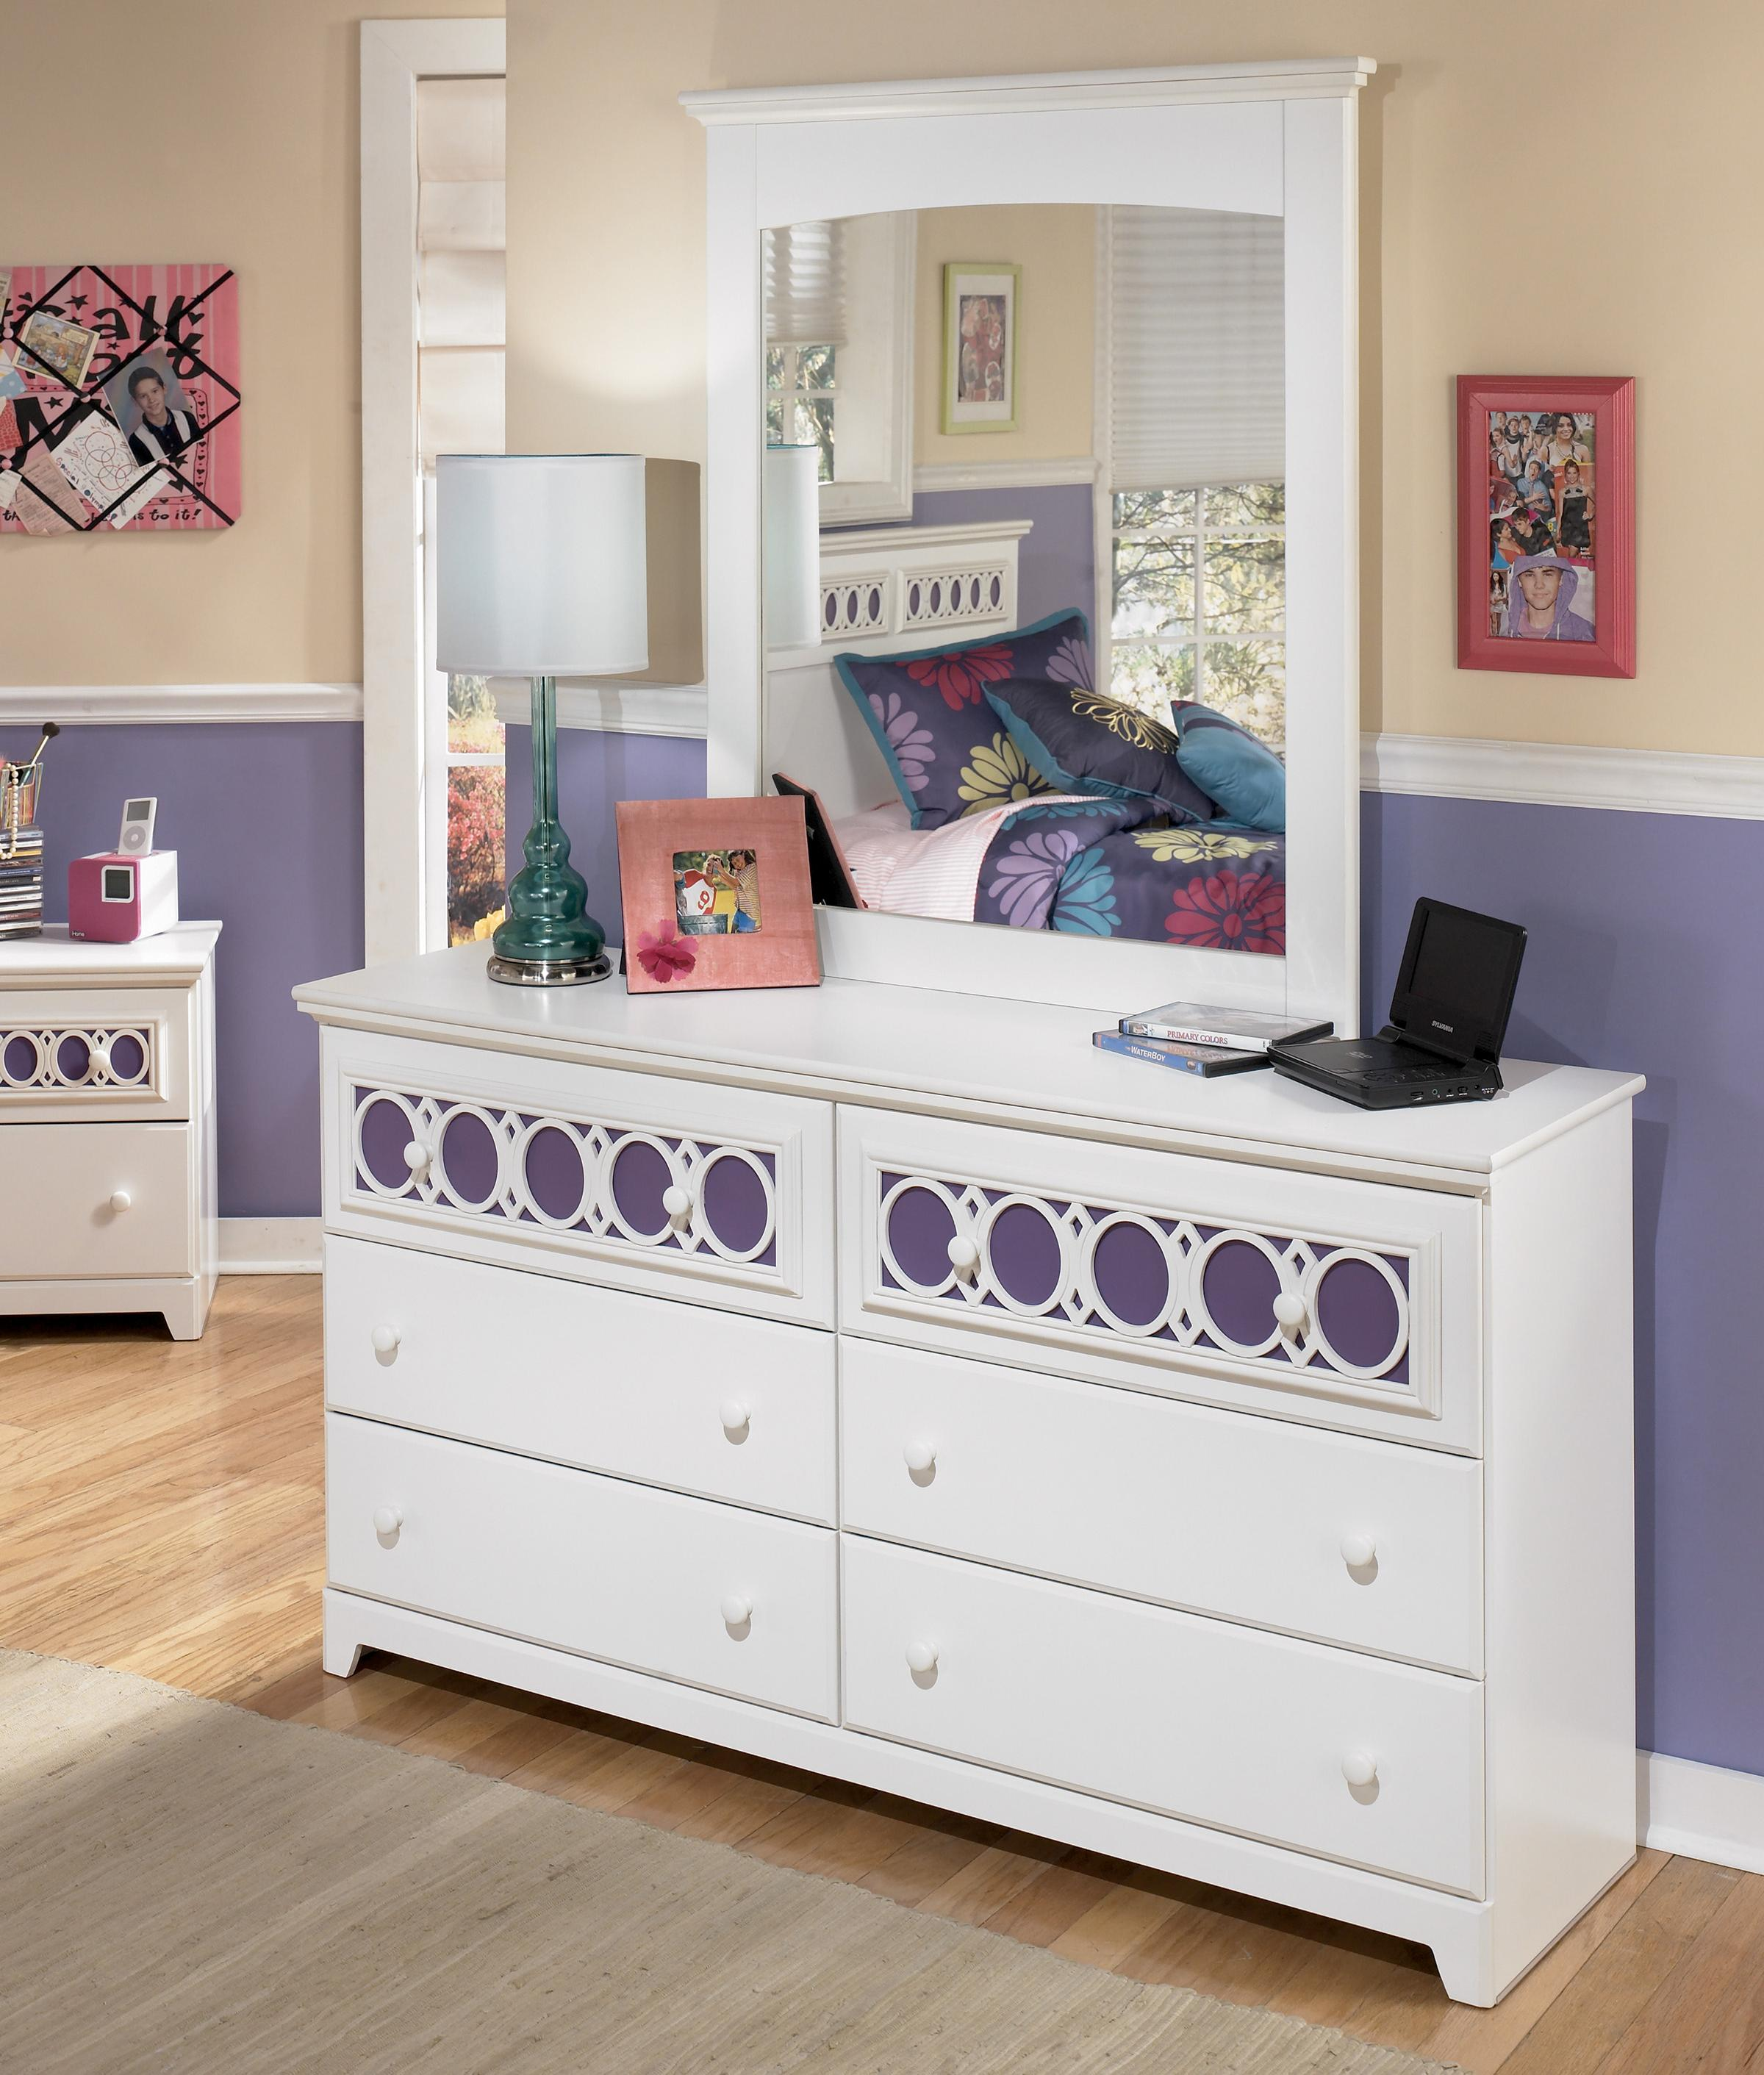 Signature Design by Ashley Zayley Dresser & Mirror - Item Number: B131-21+26